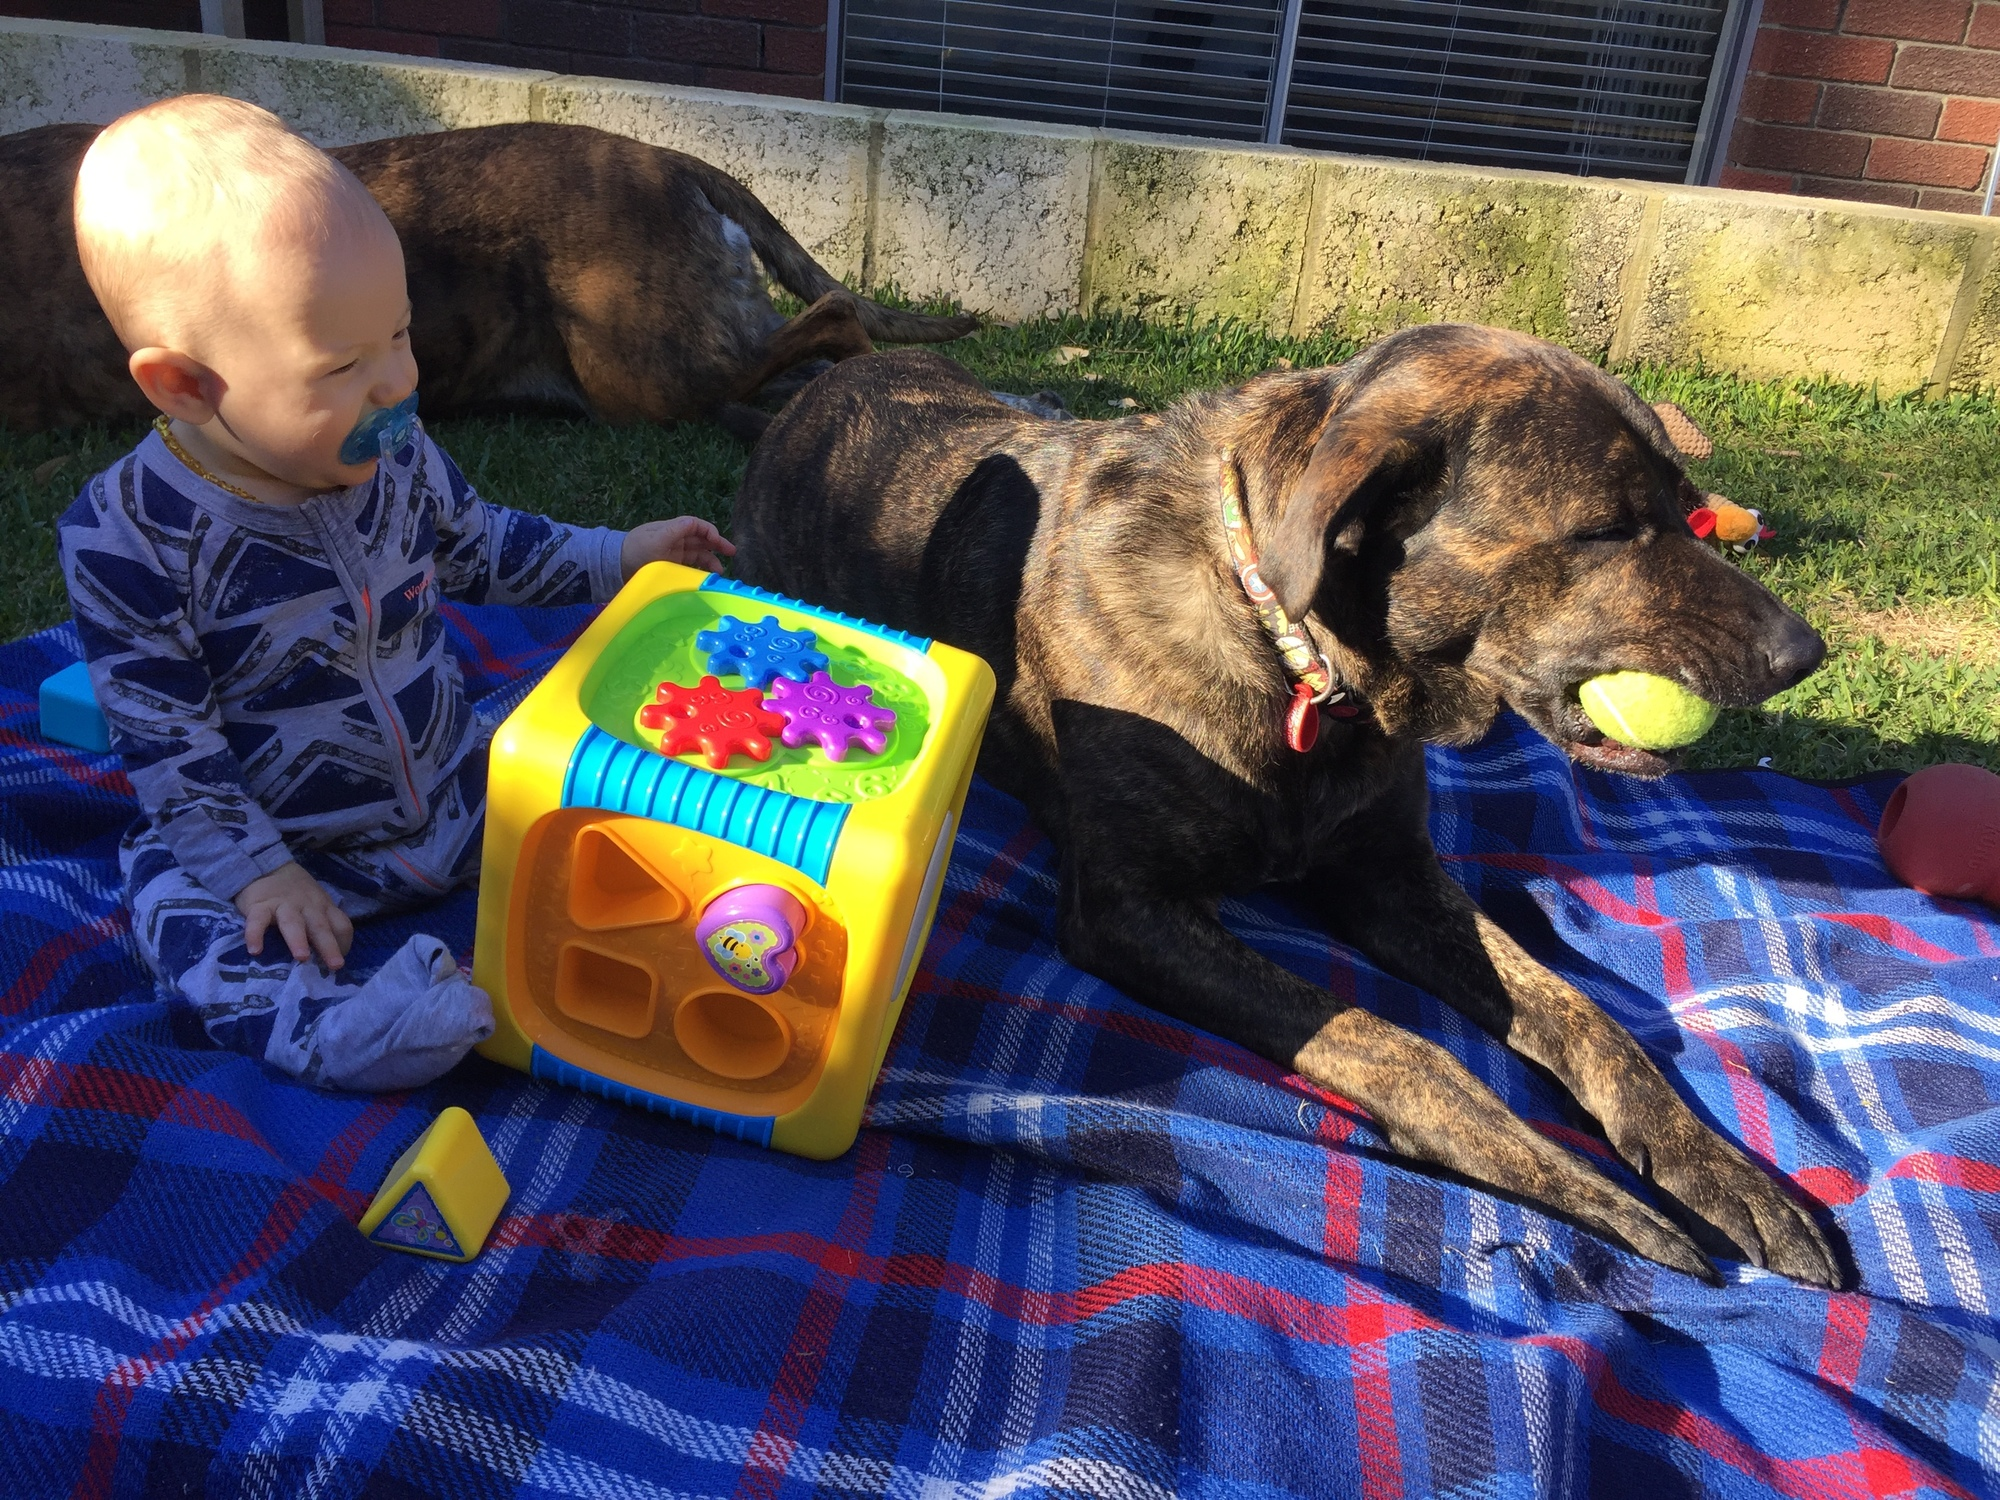 a baby sitting on a picnic rug with a dog